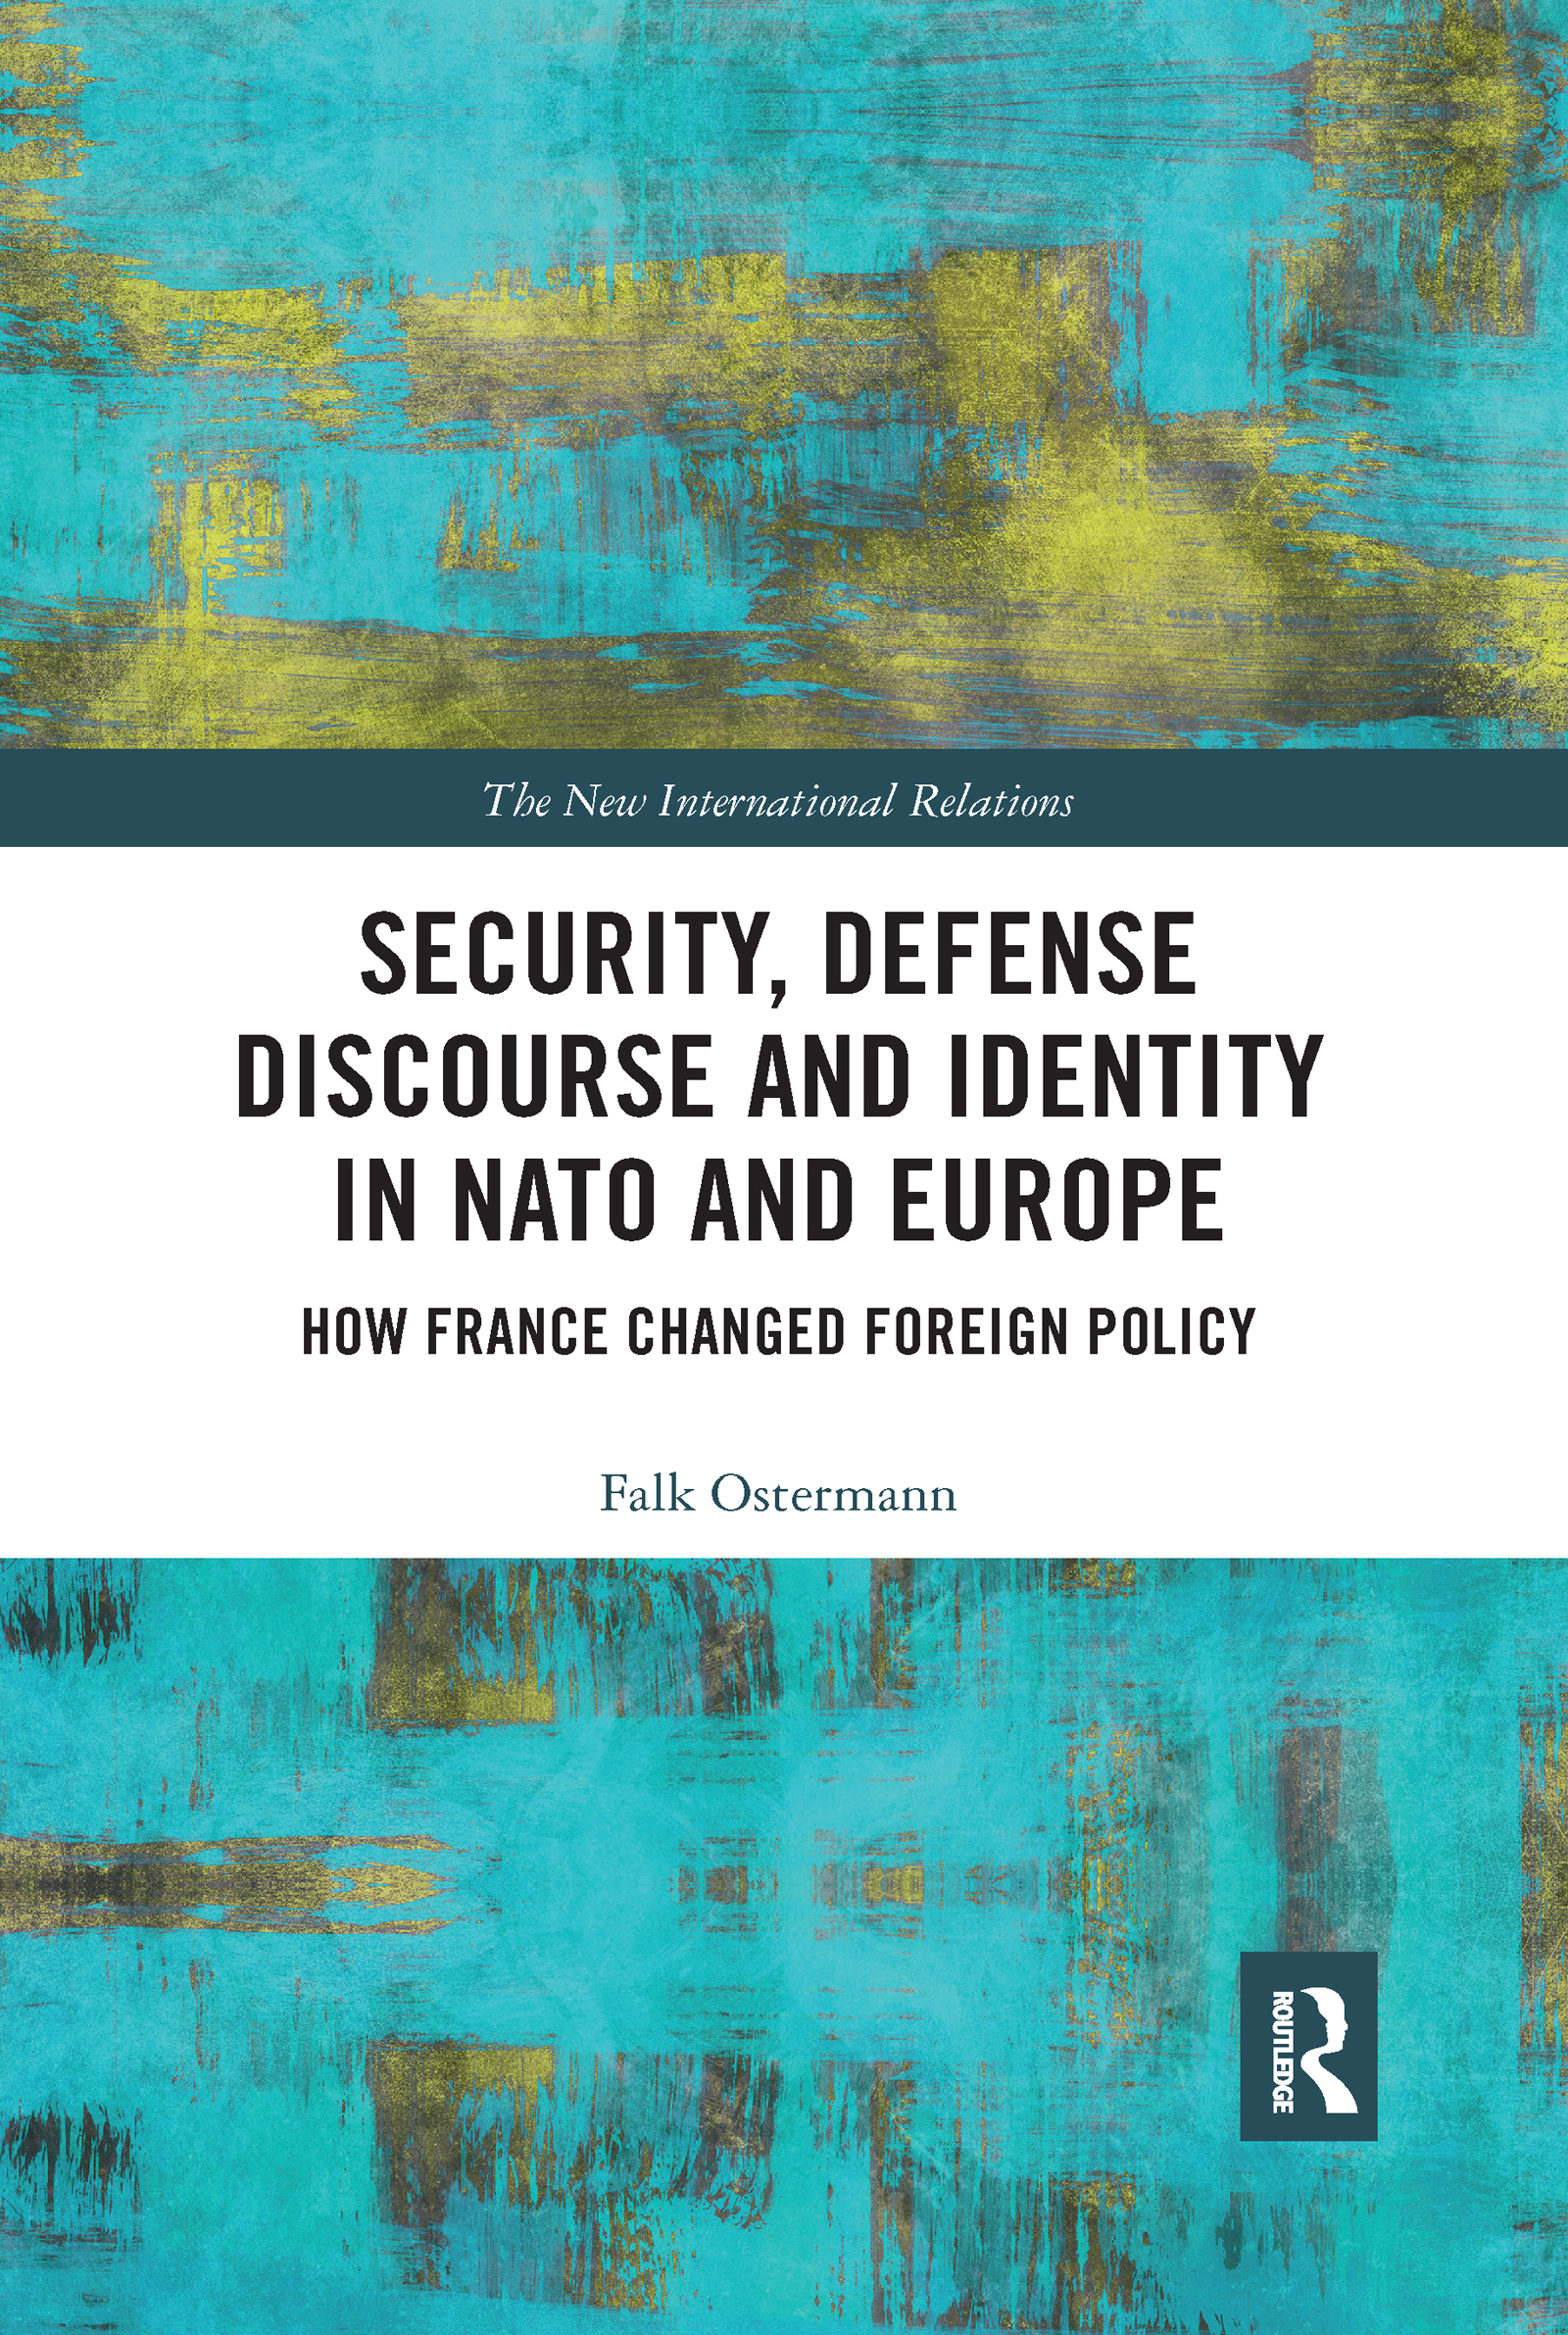 Security, Defense Discourse and Identity in NATO and Europe